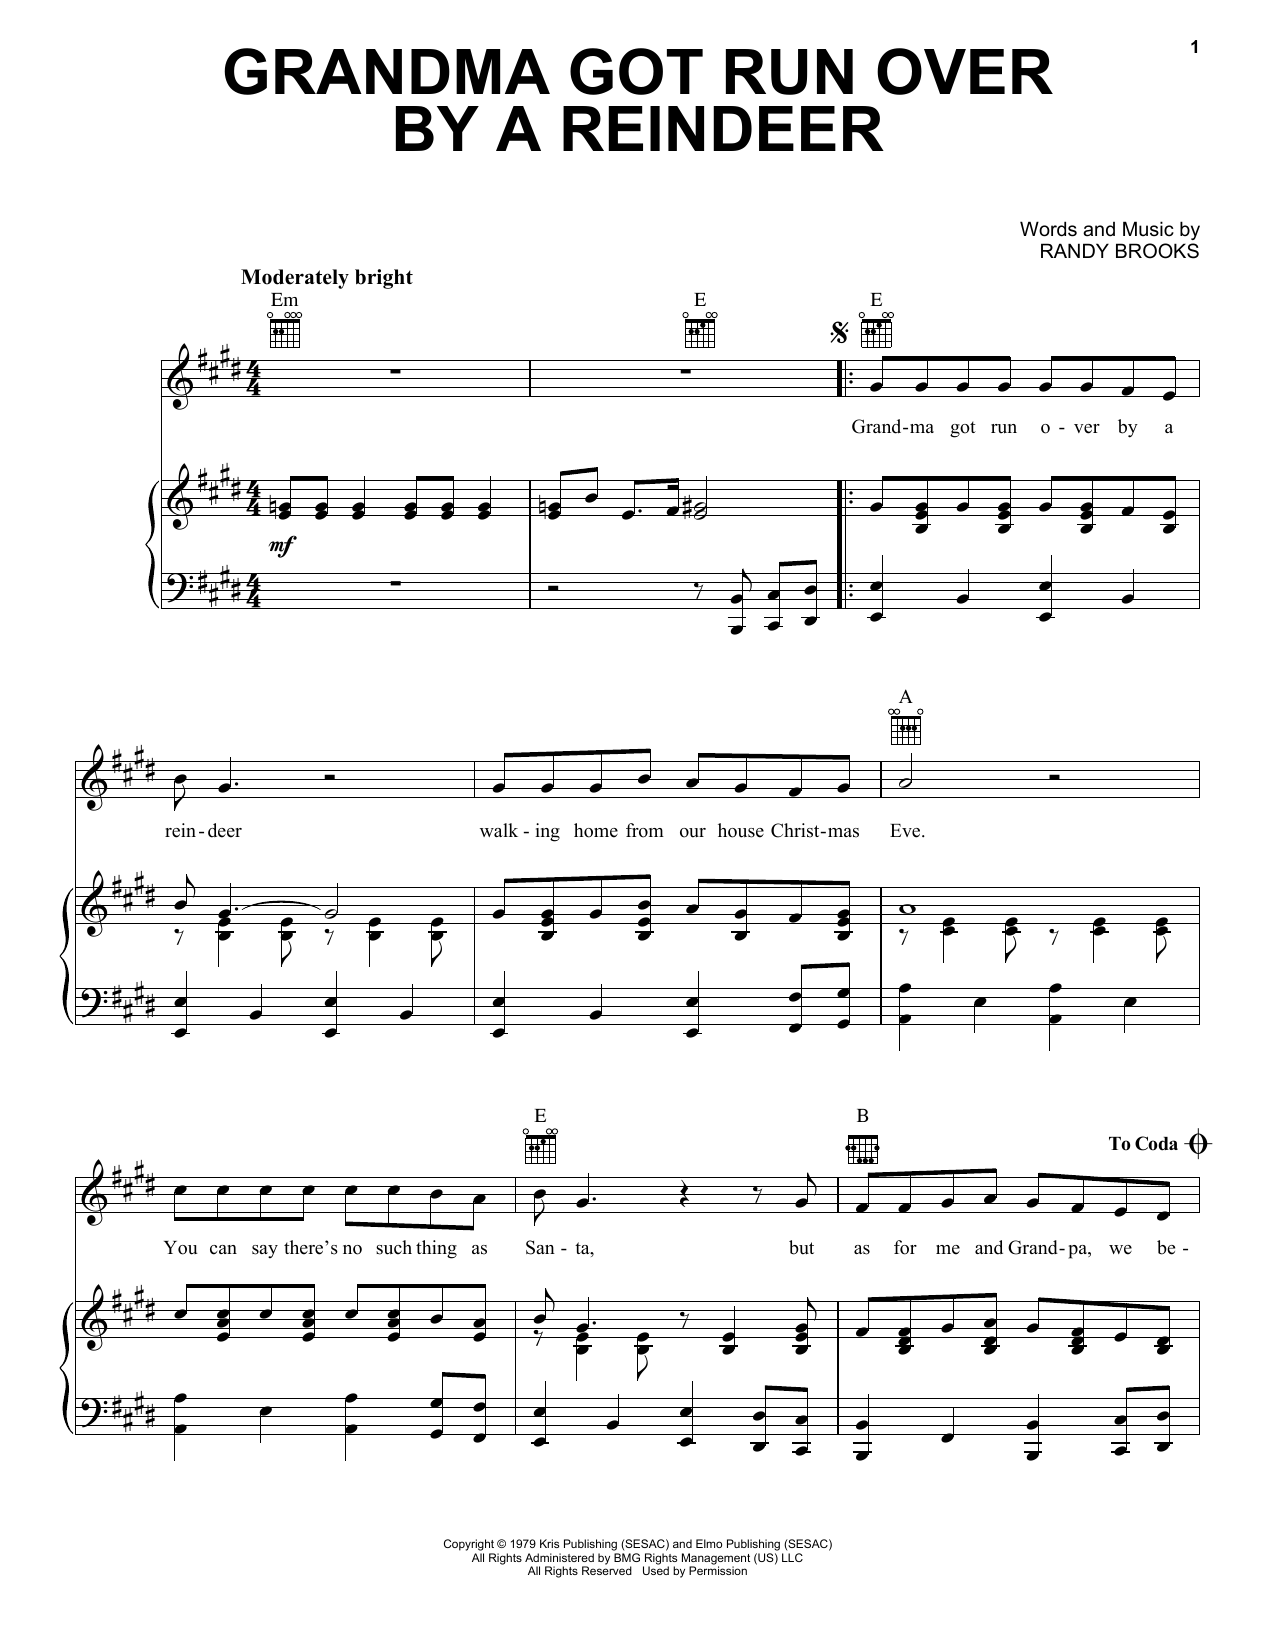 Randy Brooks Grandma Got Run Over By A Reindeer sheet music notes and chords. Download Printable PDF.